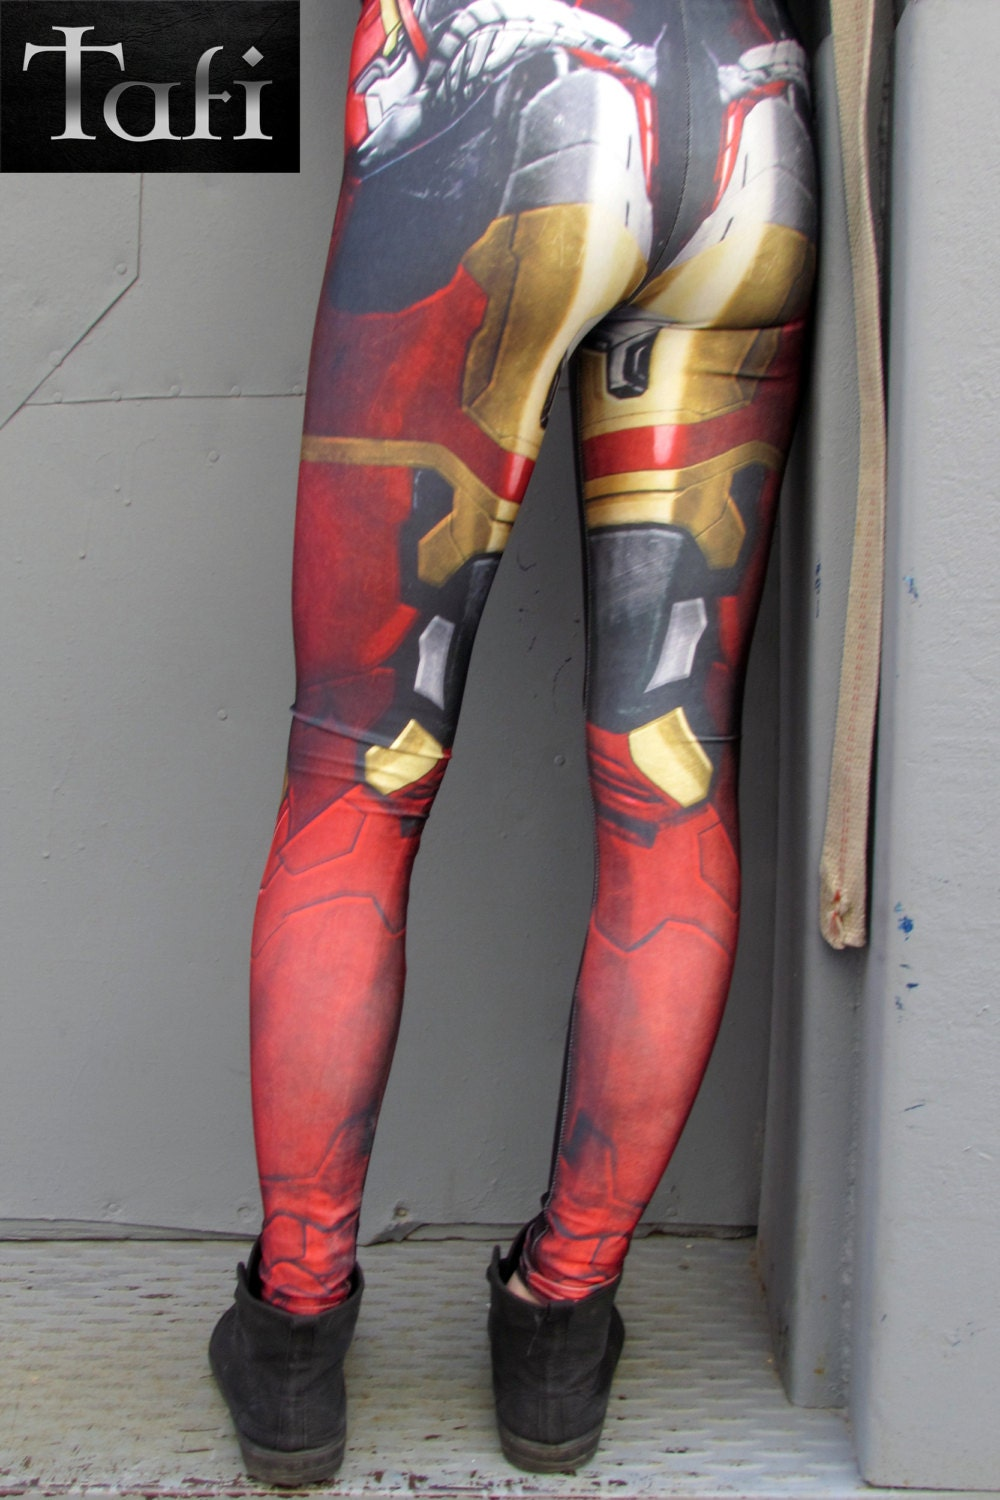 TAFI Iron Man Armor Leggings - Avengers Infinity War ...